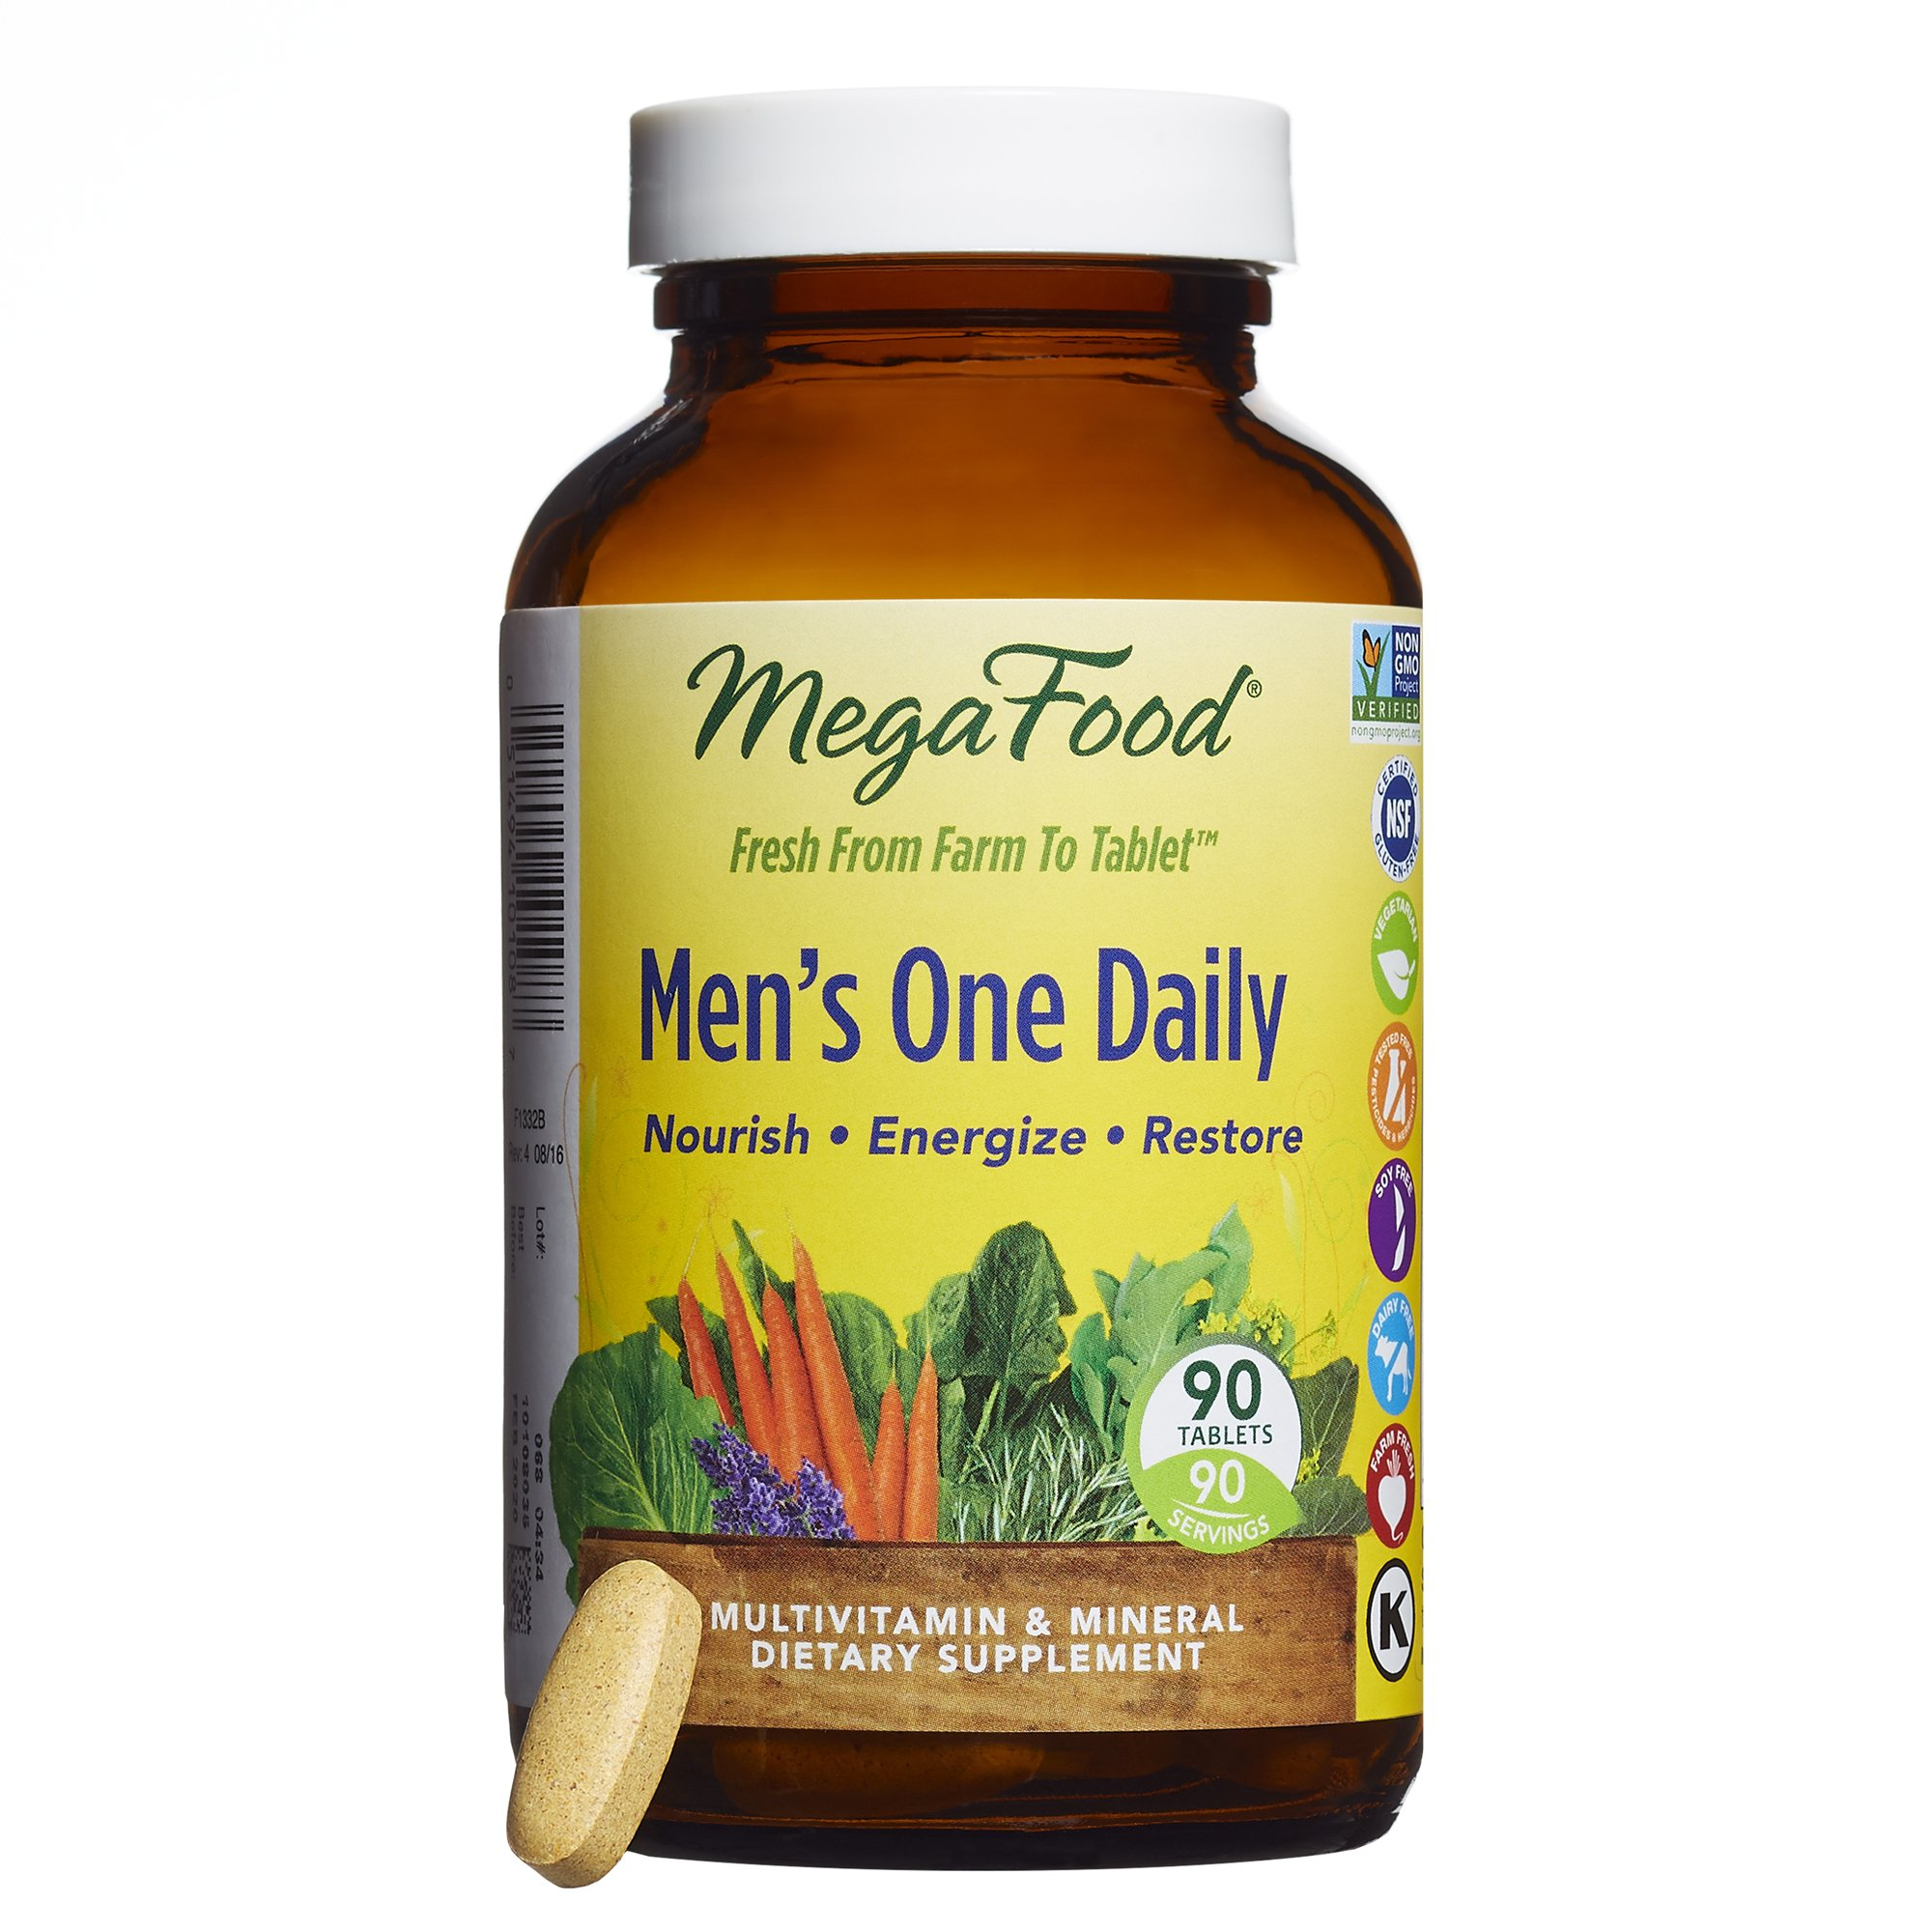 MegaFood - Men's One Daily, Supports Energy Levels & a Healthy Stress Response, 90 Tablets (FFP)